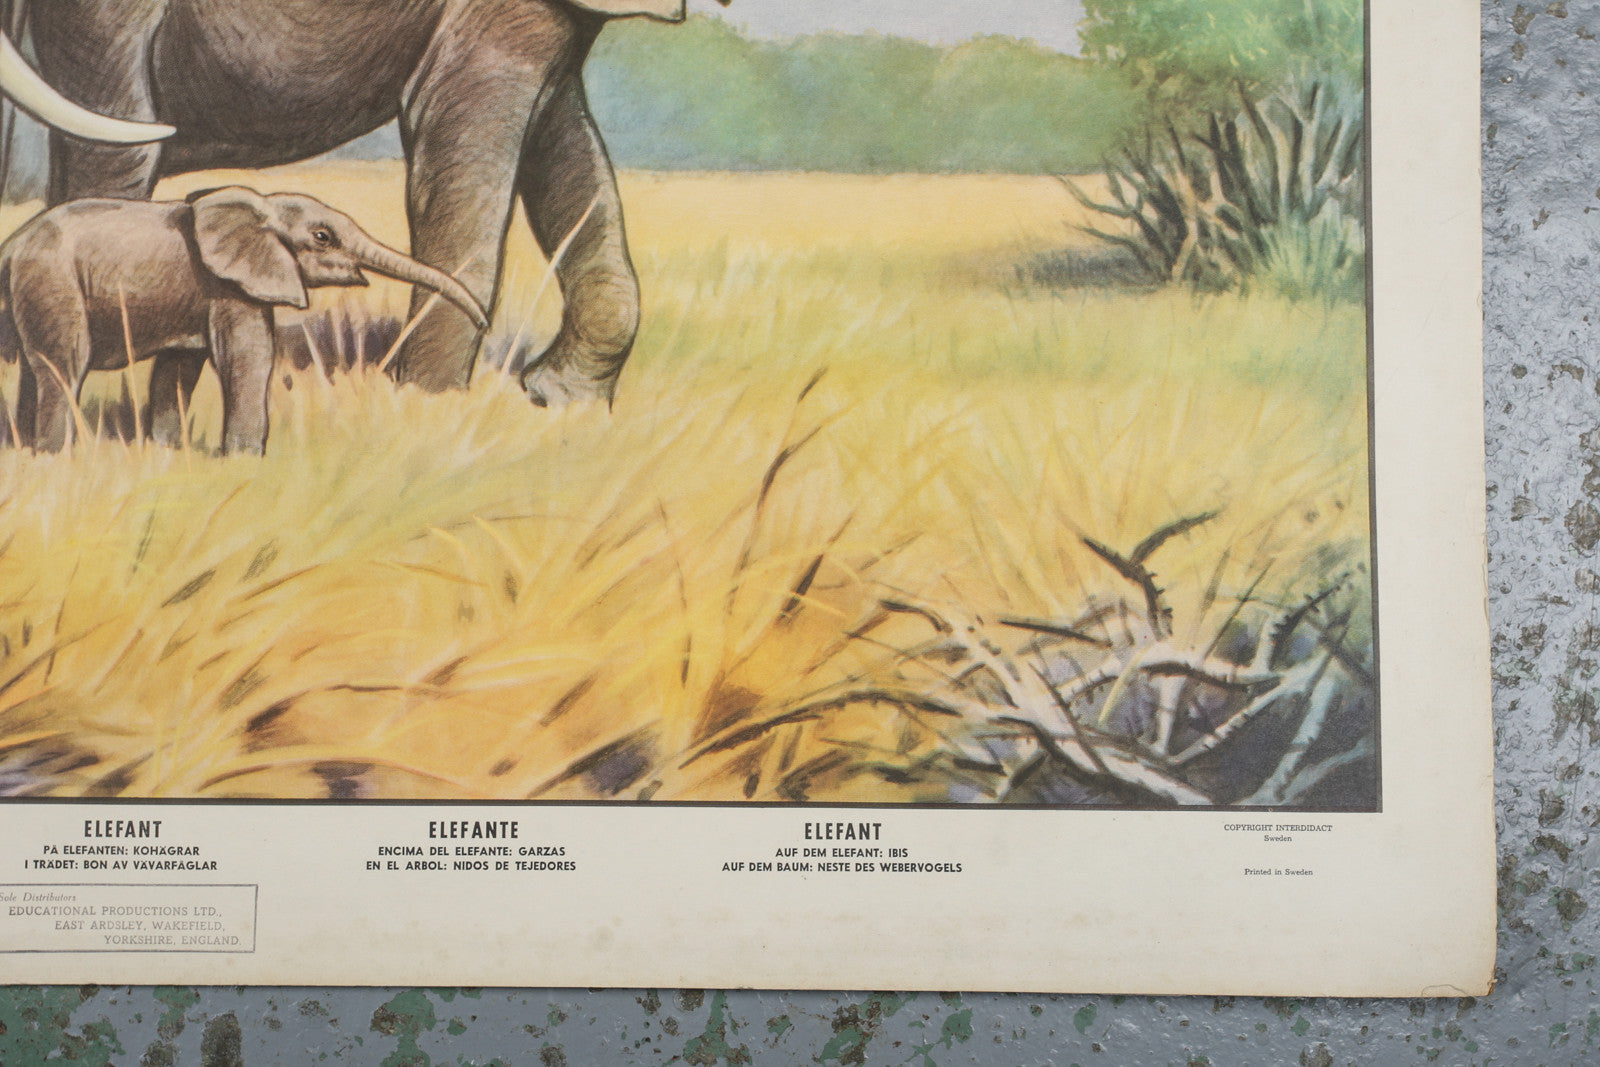 A 1960s educational wall chart of elephants available to buy from Industrious Interiors, an online vintage furniture and homeware store based in Nottingham, England.